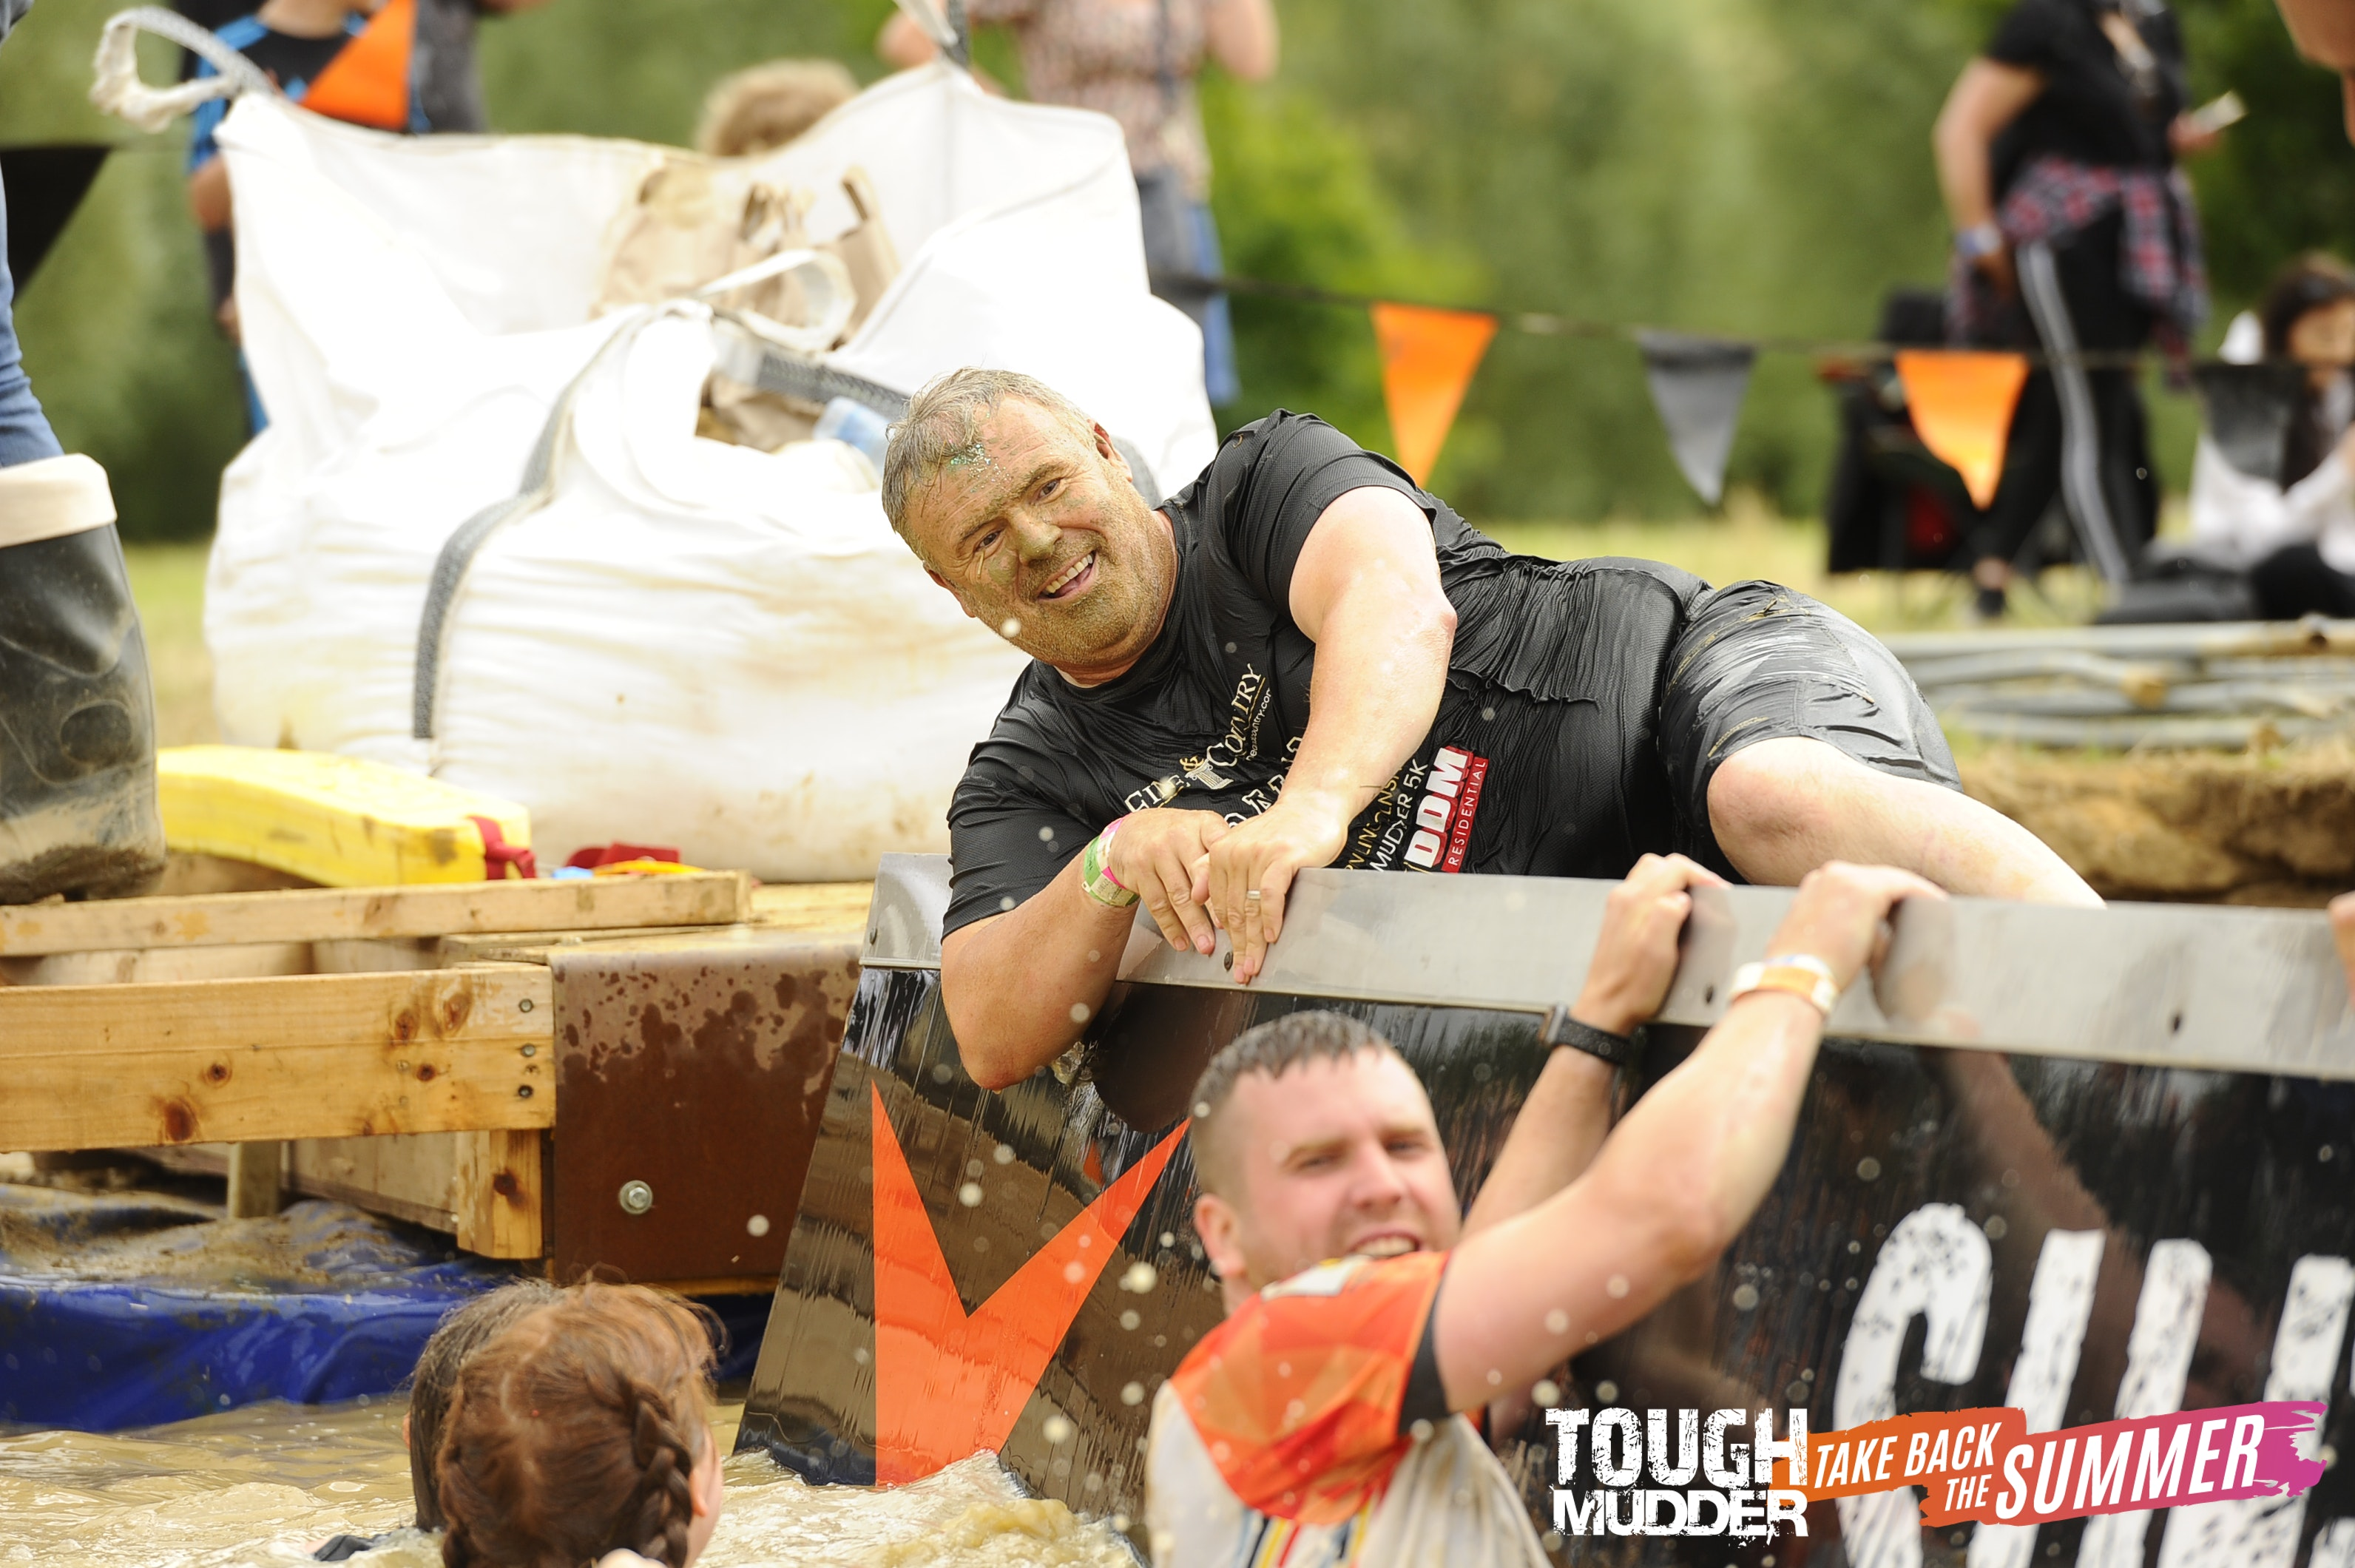 Graham Foulger from Fine & Country Northern Lincolnshire fundraising for charity at Tough Mudder